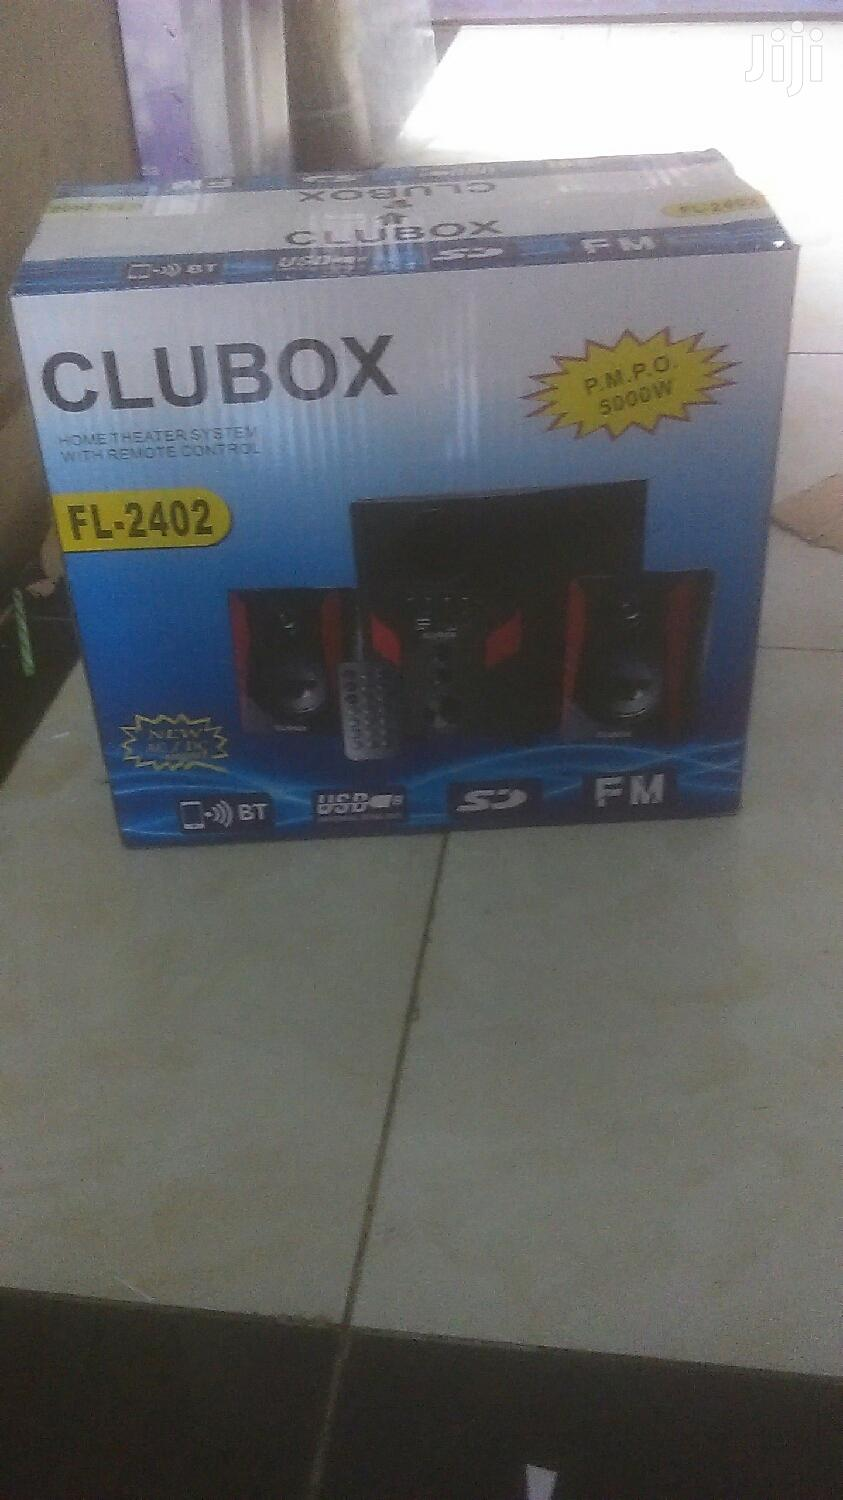 Clubox 2.1 Subwoofer